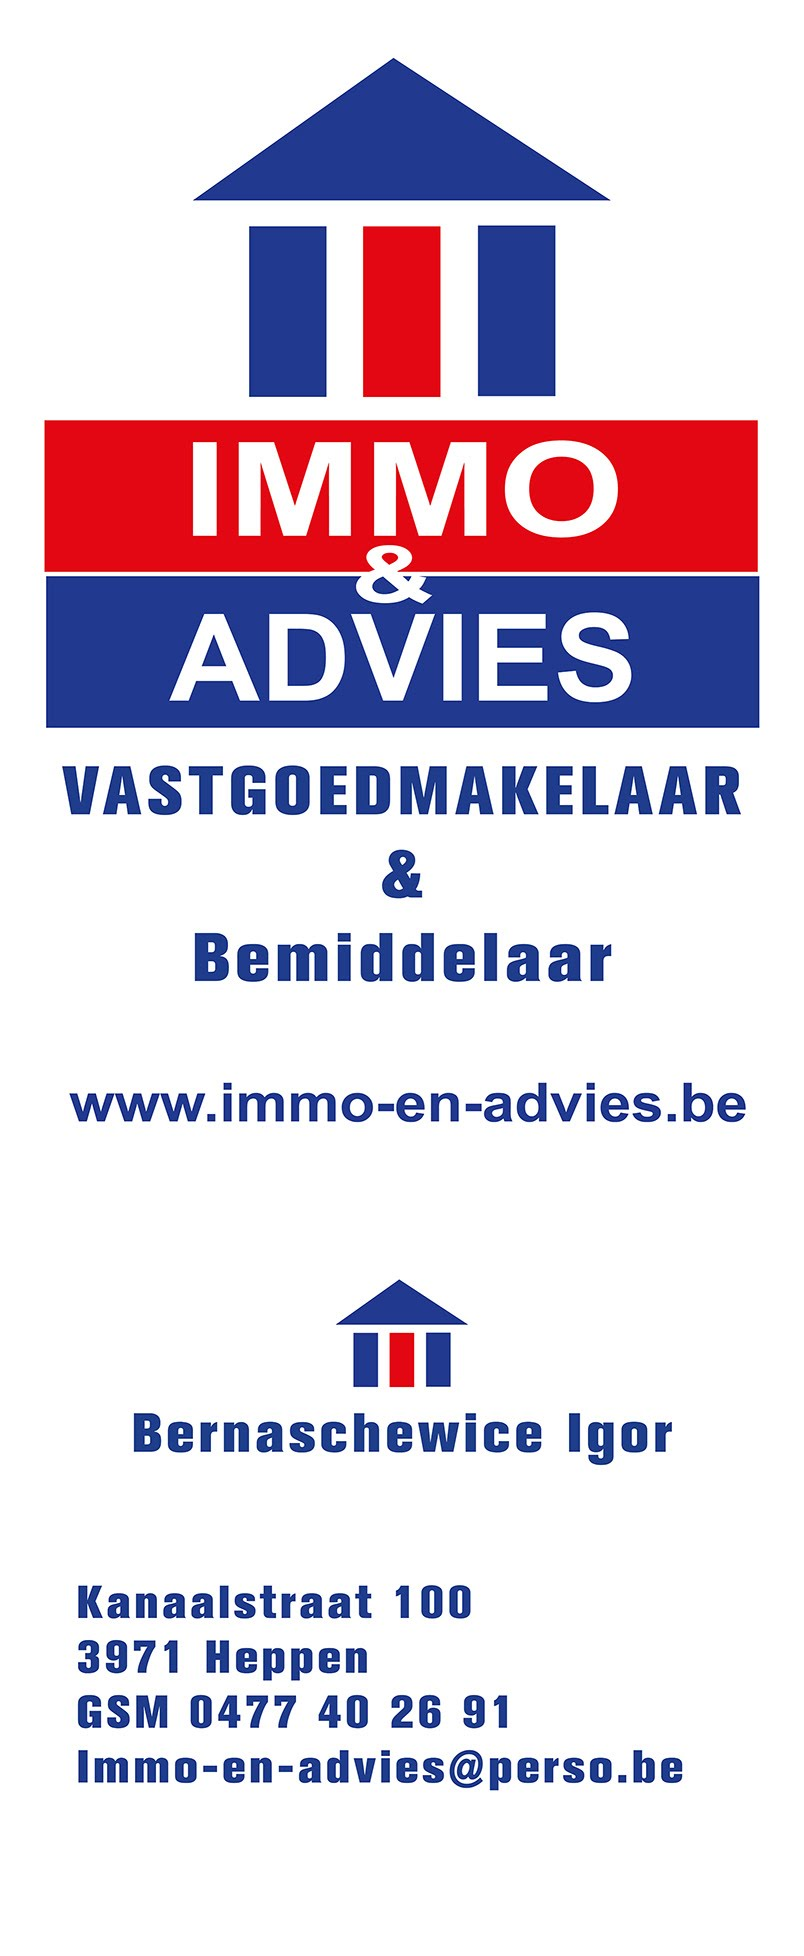 http://www.immoenadvies.be